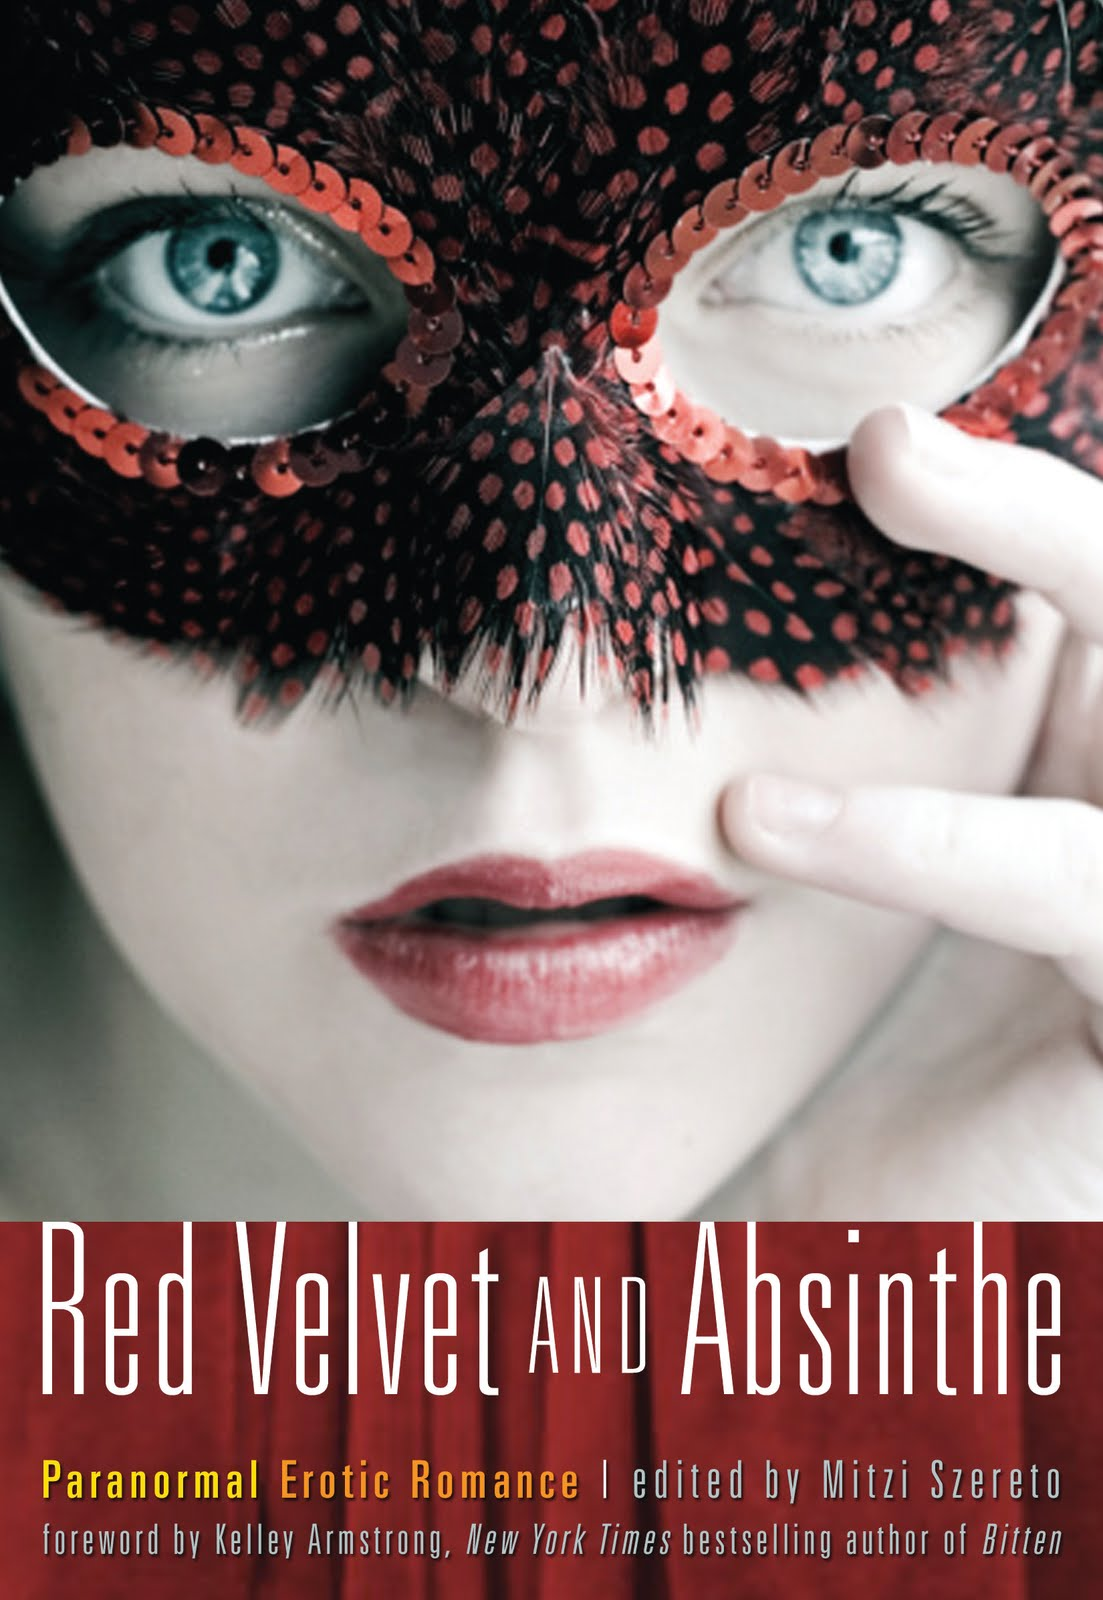 ... new anthology called Red Velvet and Absinthe: Paranormal Erotic Romance ...